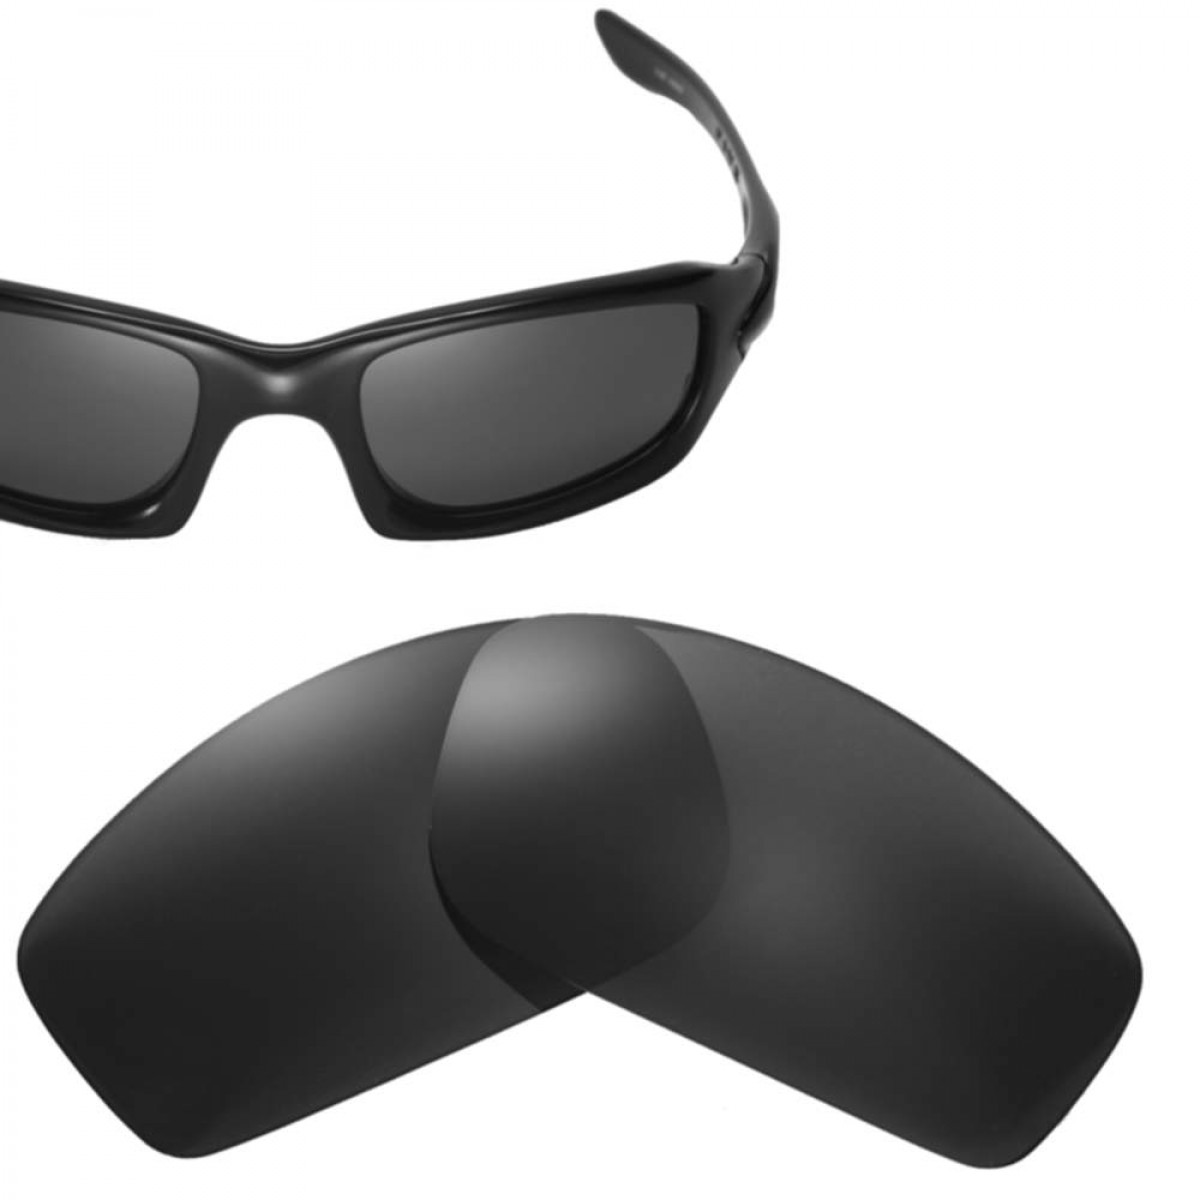 ef8392f3a4 Cofery Lenses Store Cofery Replacement Lenses for Oakley Fives 4.0  Sunglasses